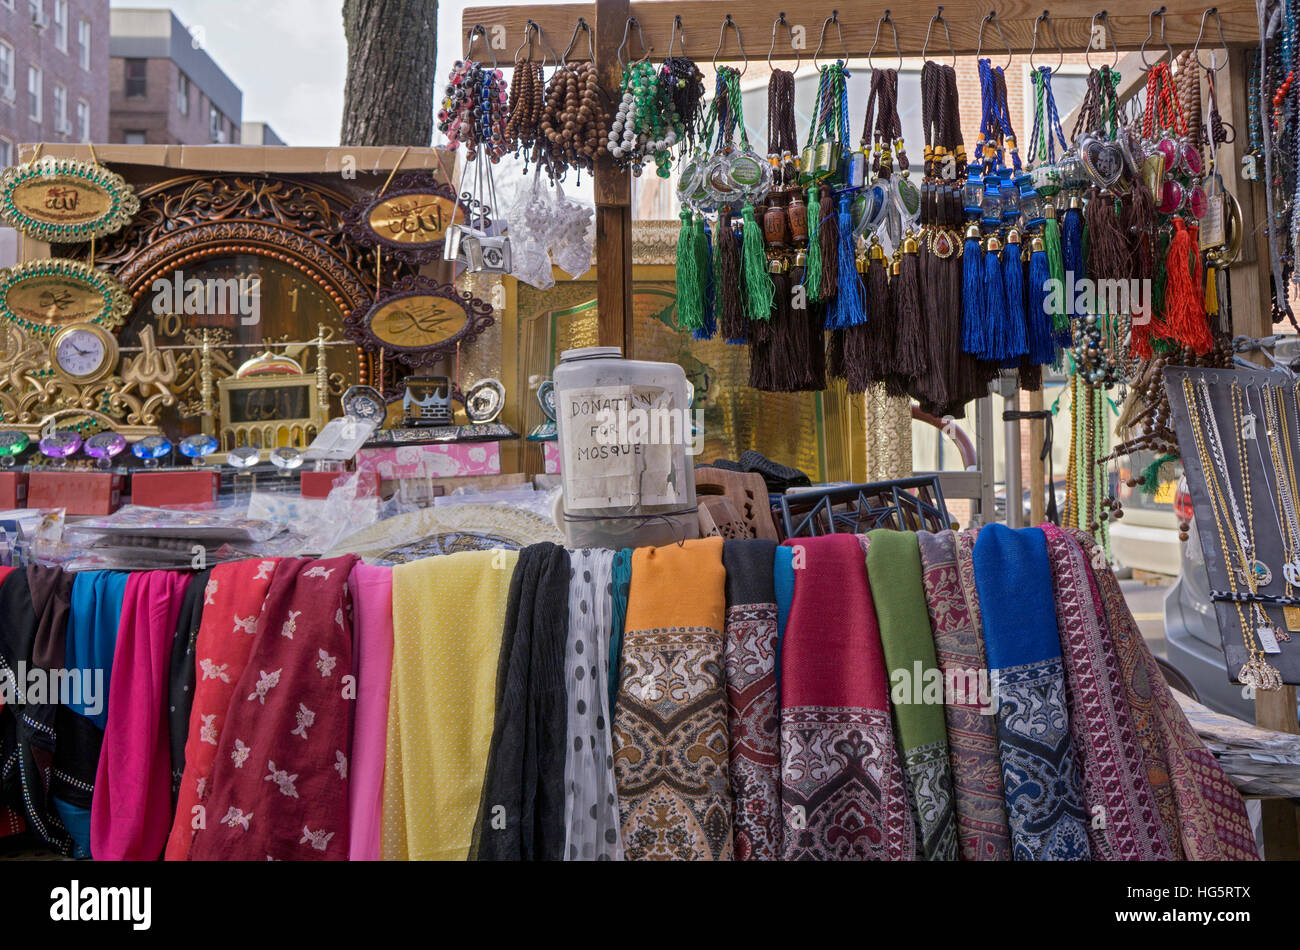 A Muslim merchants stand on 3th Ave., Jackson Heights NYC selling religious articles & with a charity box for - Stock Image